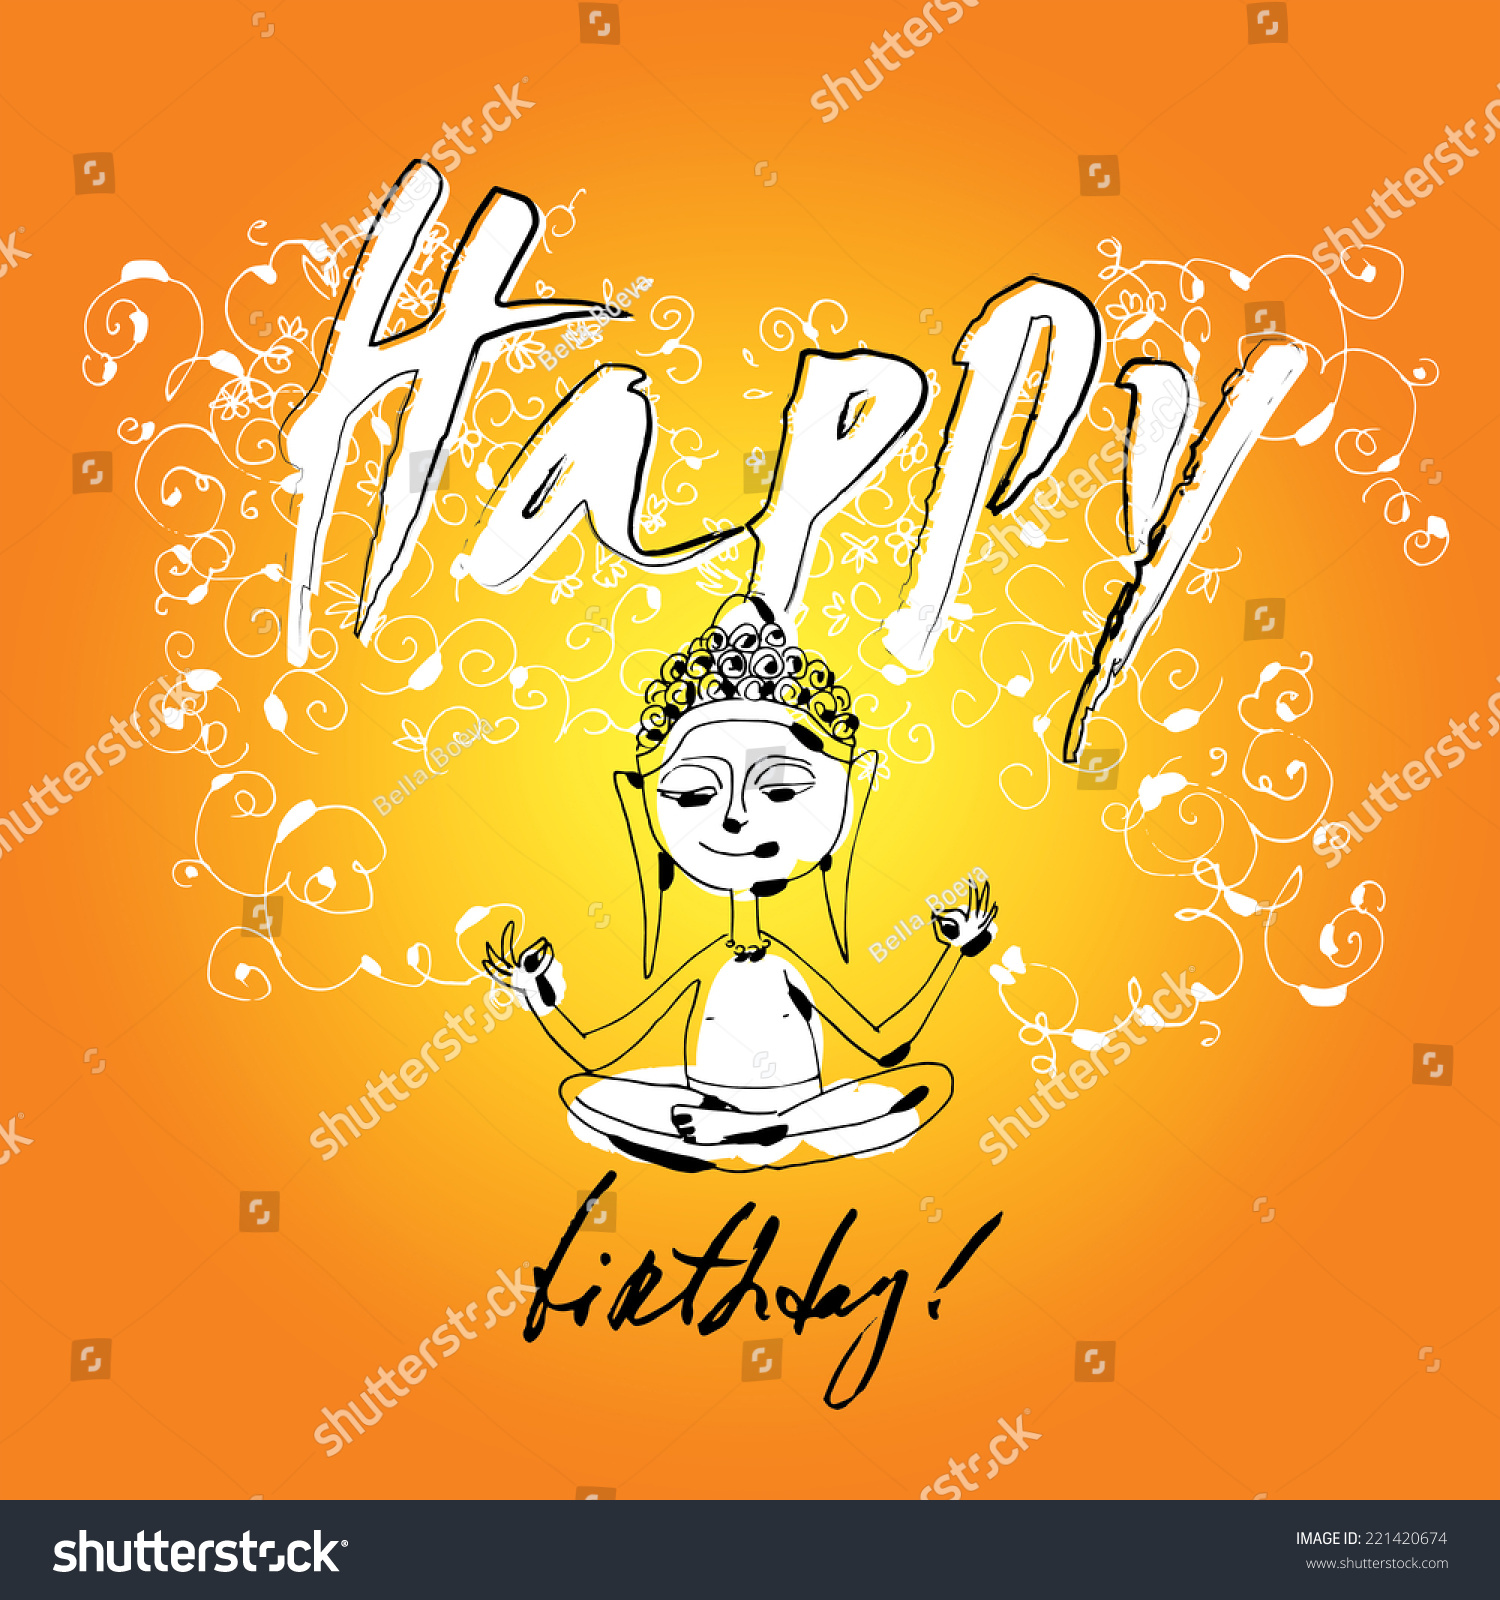 Happy birthday card image buddha vector stock vector 221420674 happy birthday card with image of buddha vector hand drawn illustration funny m4hsunfo